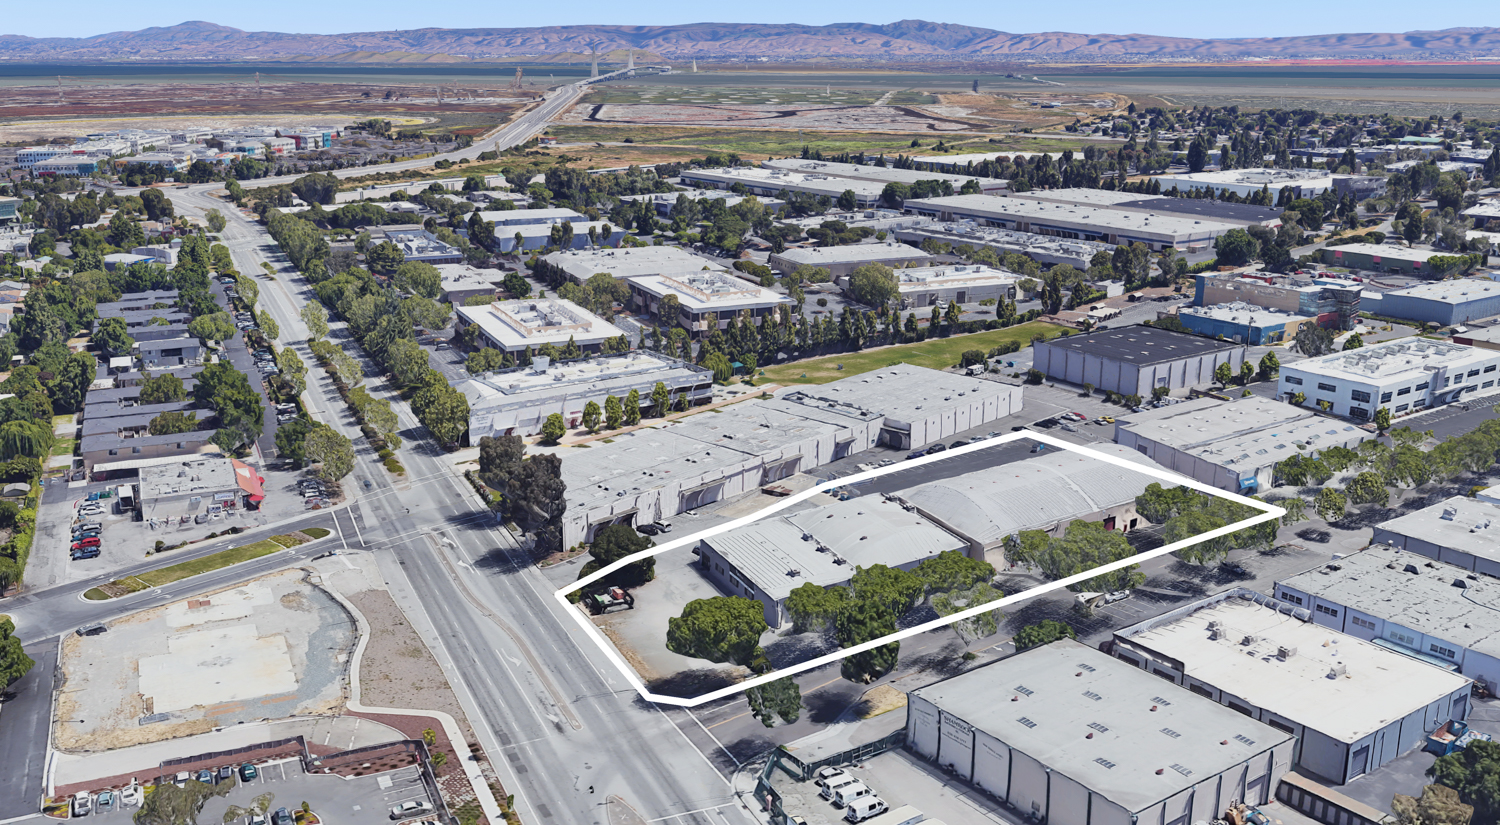 995-1005 O'Brien Drive and 1300 Willow Road with the Facebook HQ in the top left, image from Google Satellite